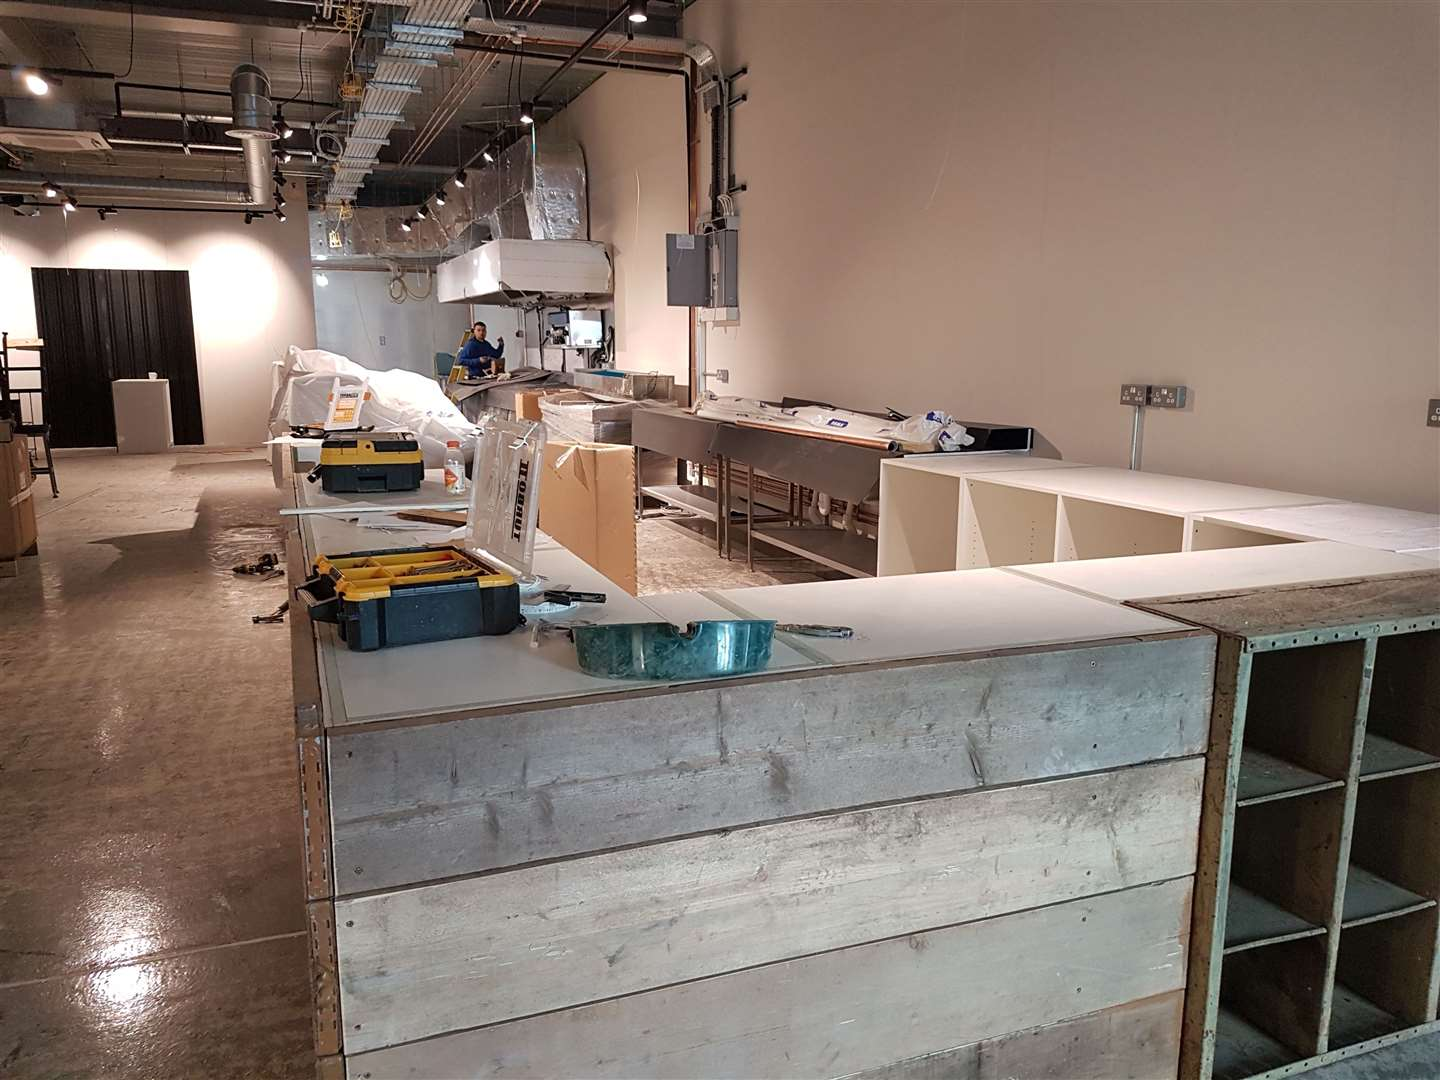 A top-of-the-range Italian coffee machine will be placed here alongside a salad bar